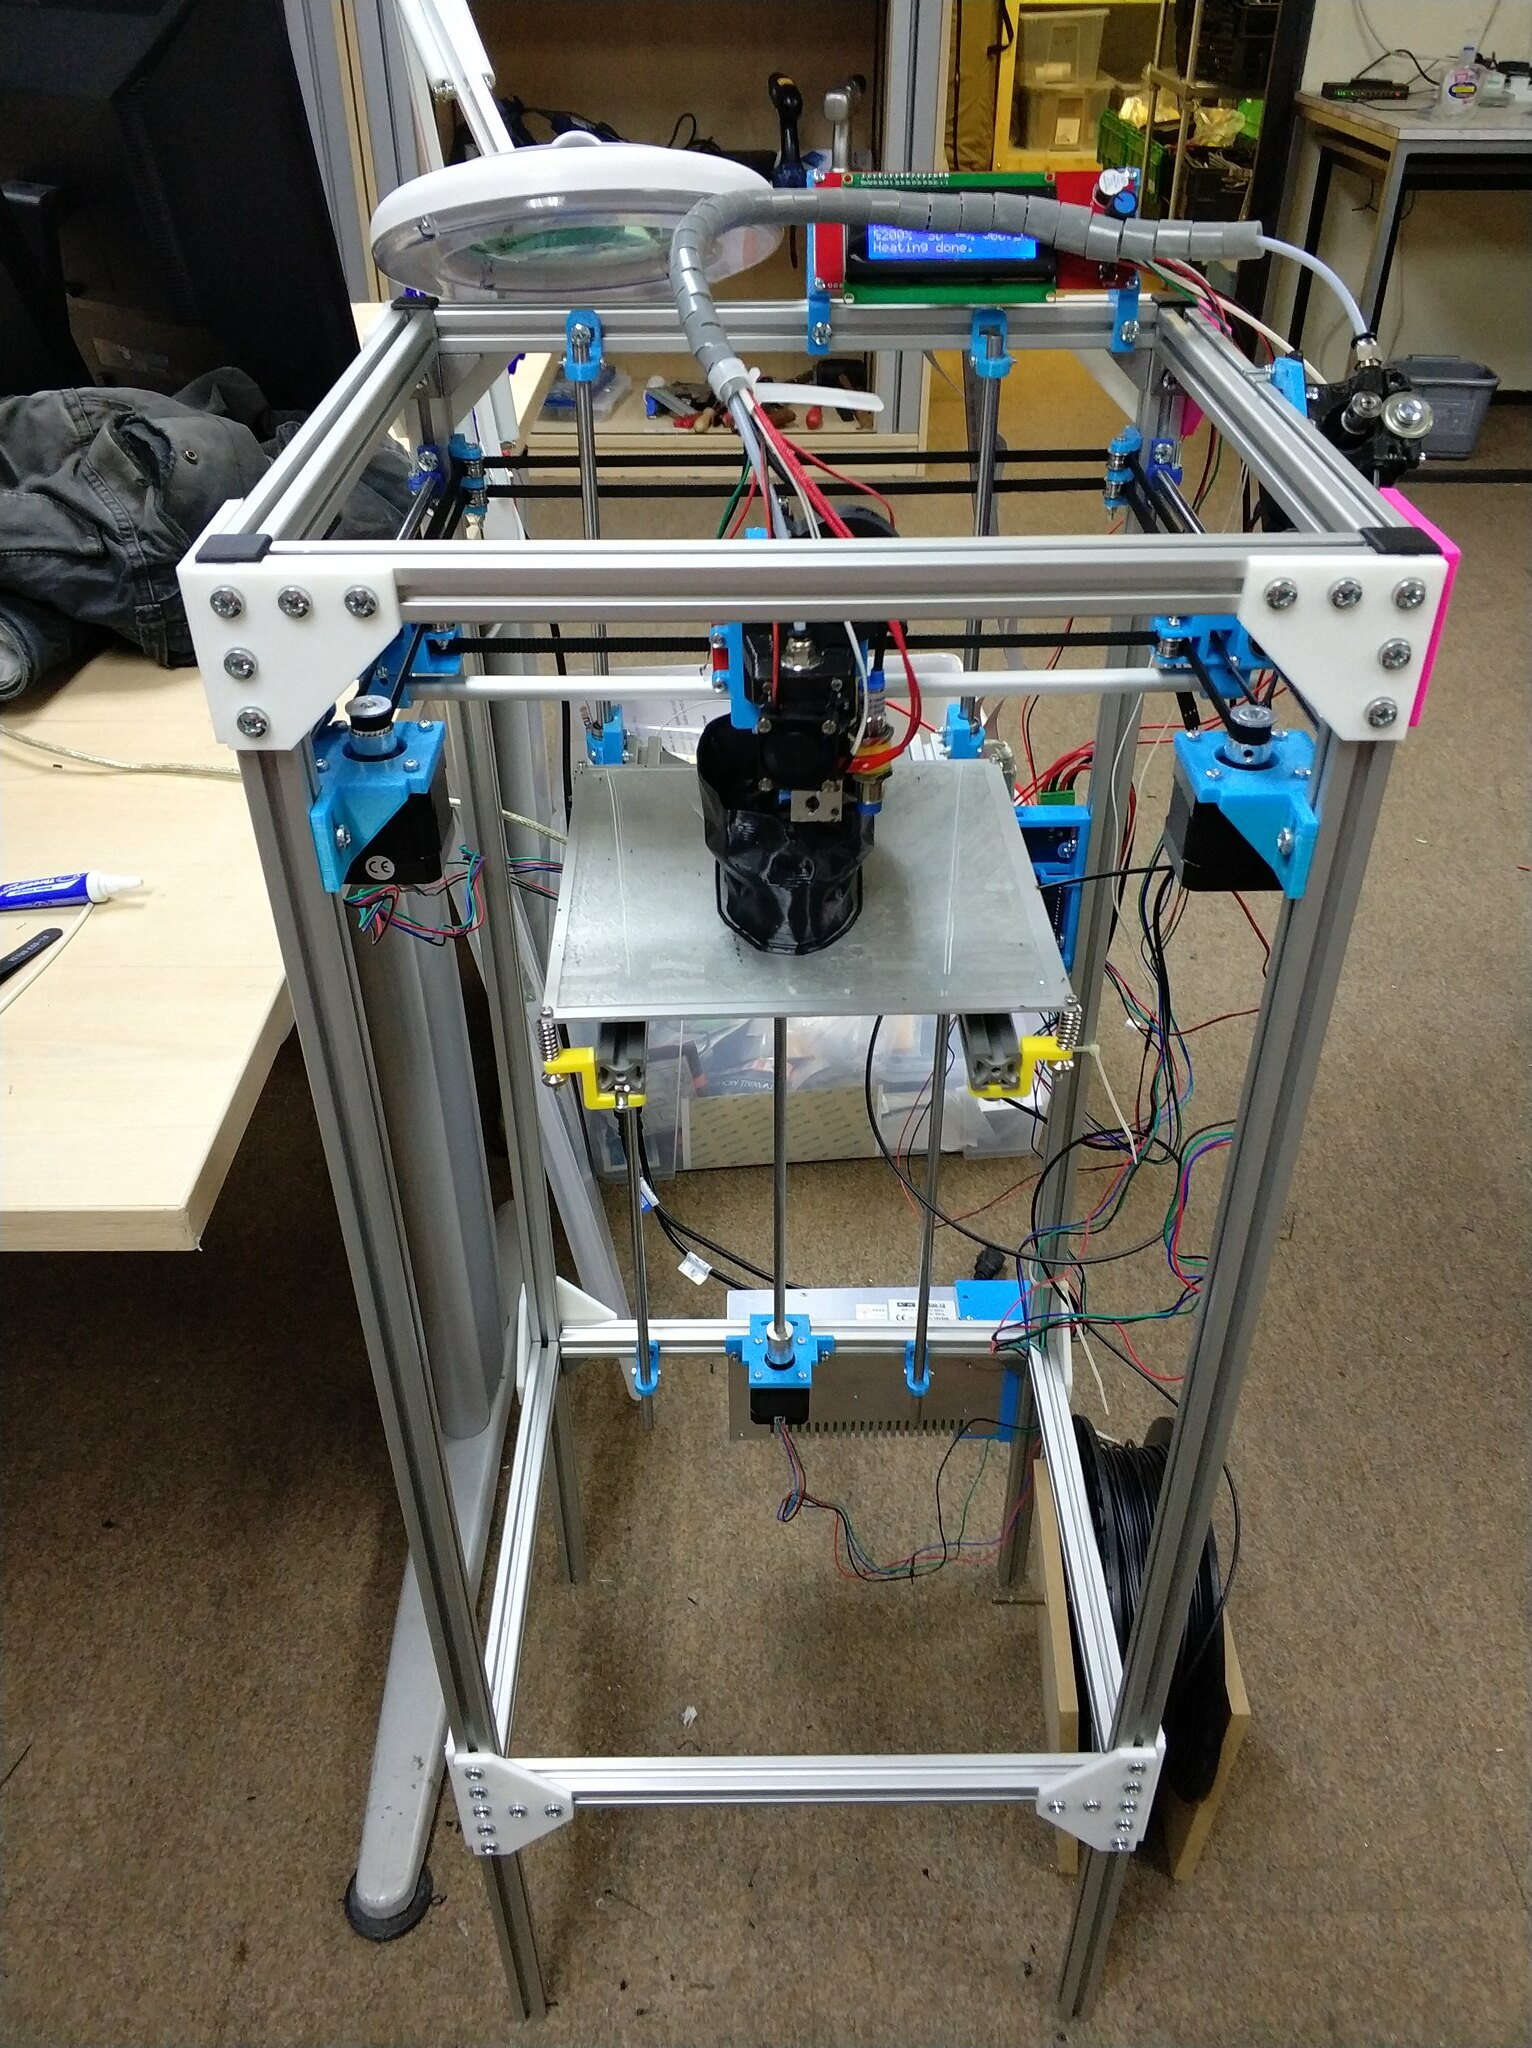 Tall hypercube printing a skull in case mode.